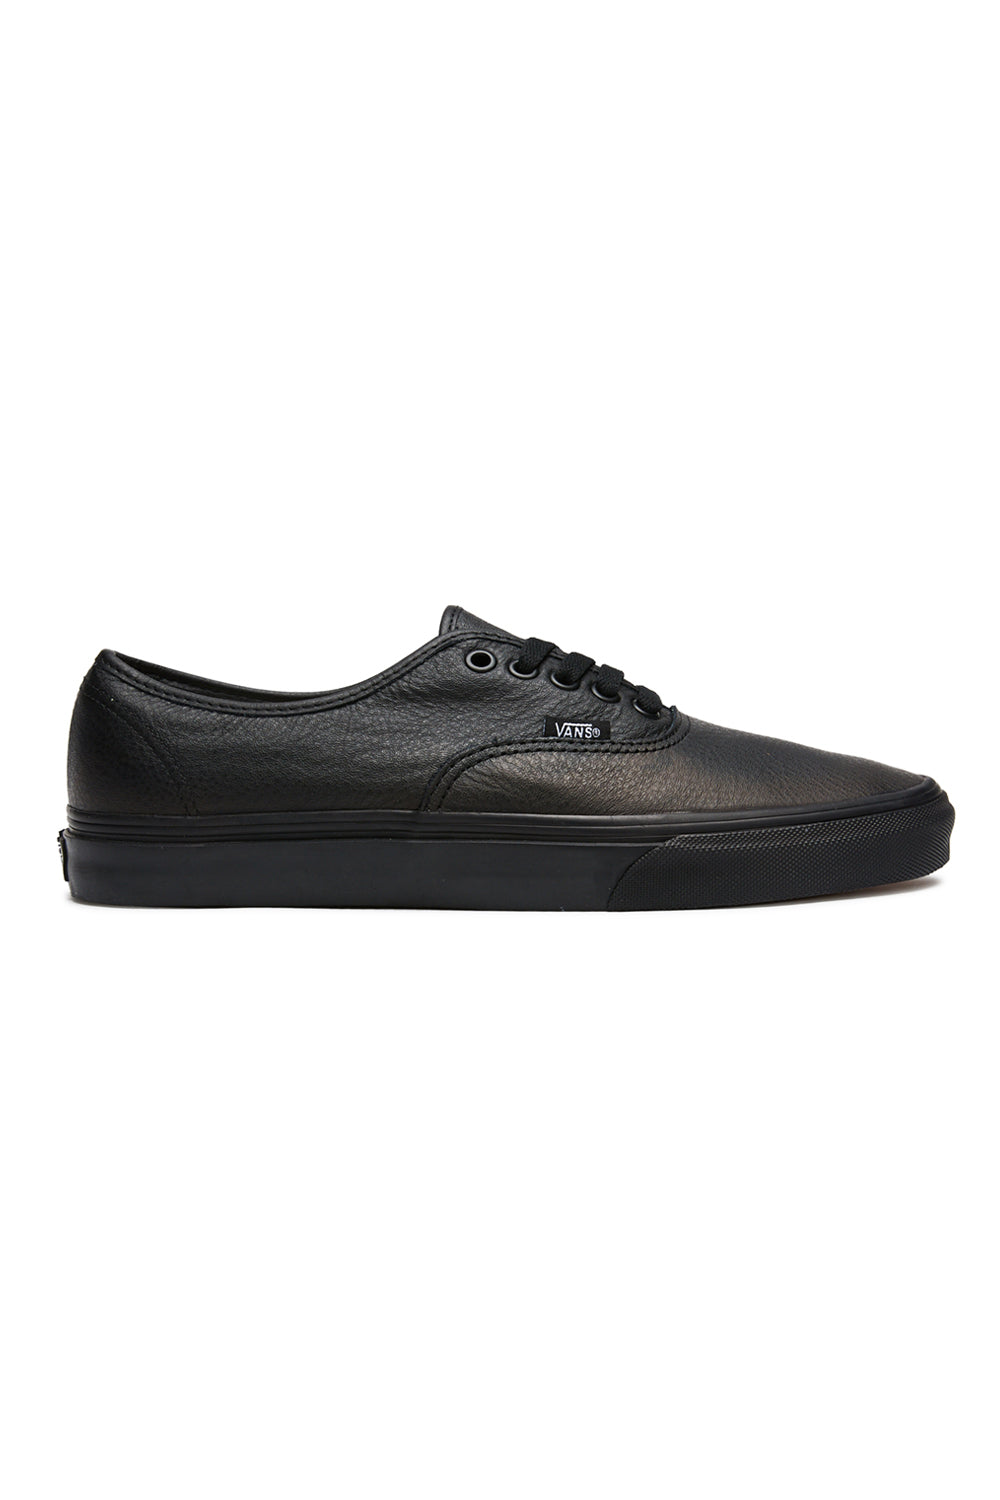 Vans Authentic Decon (Premium Leather) Shoes